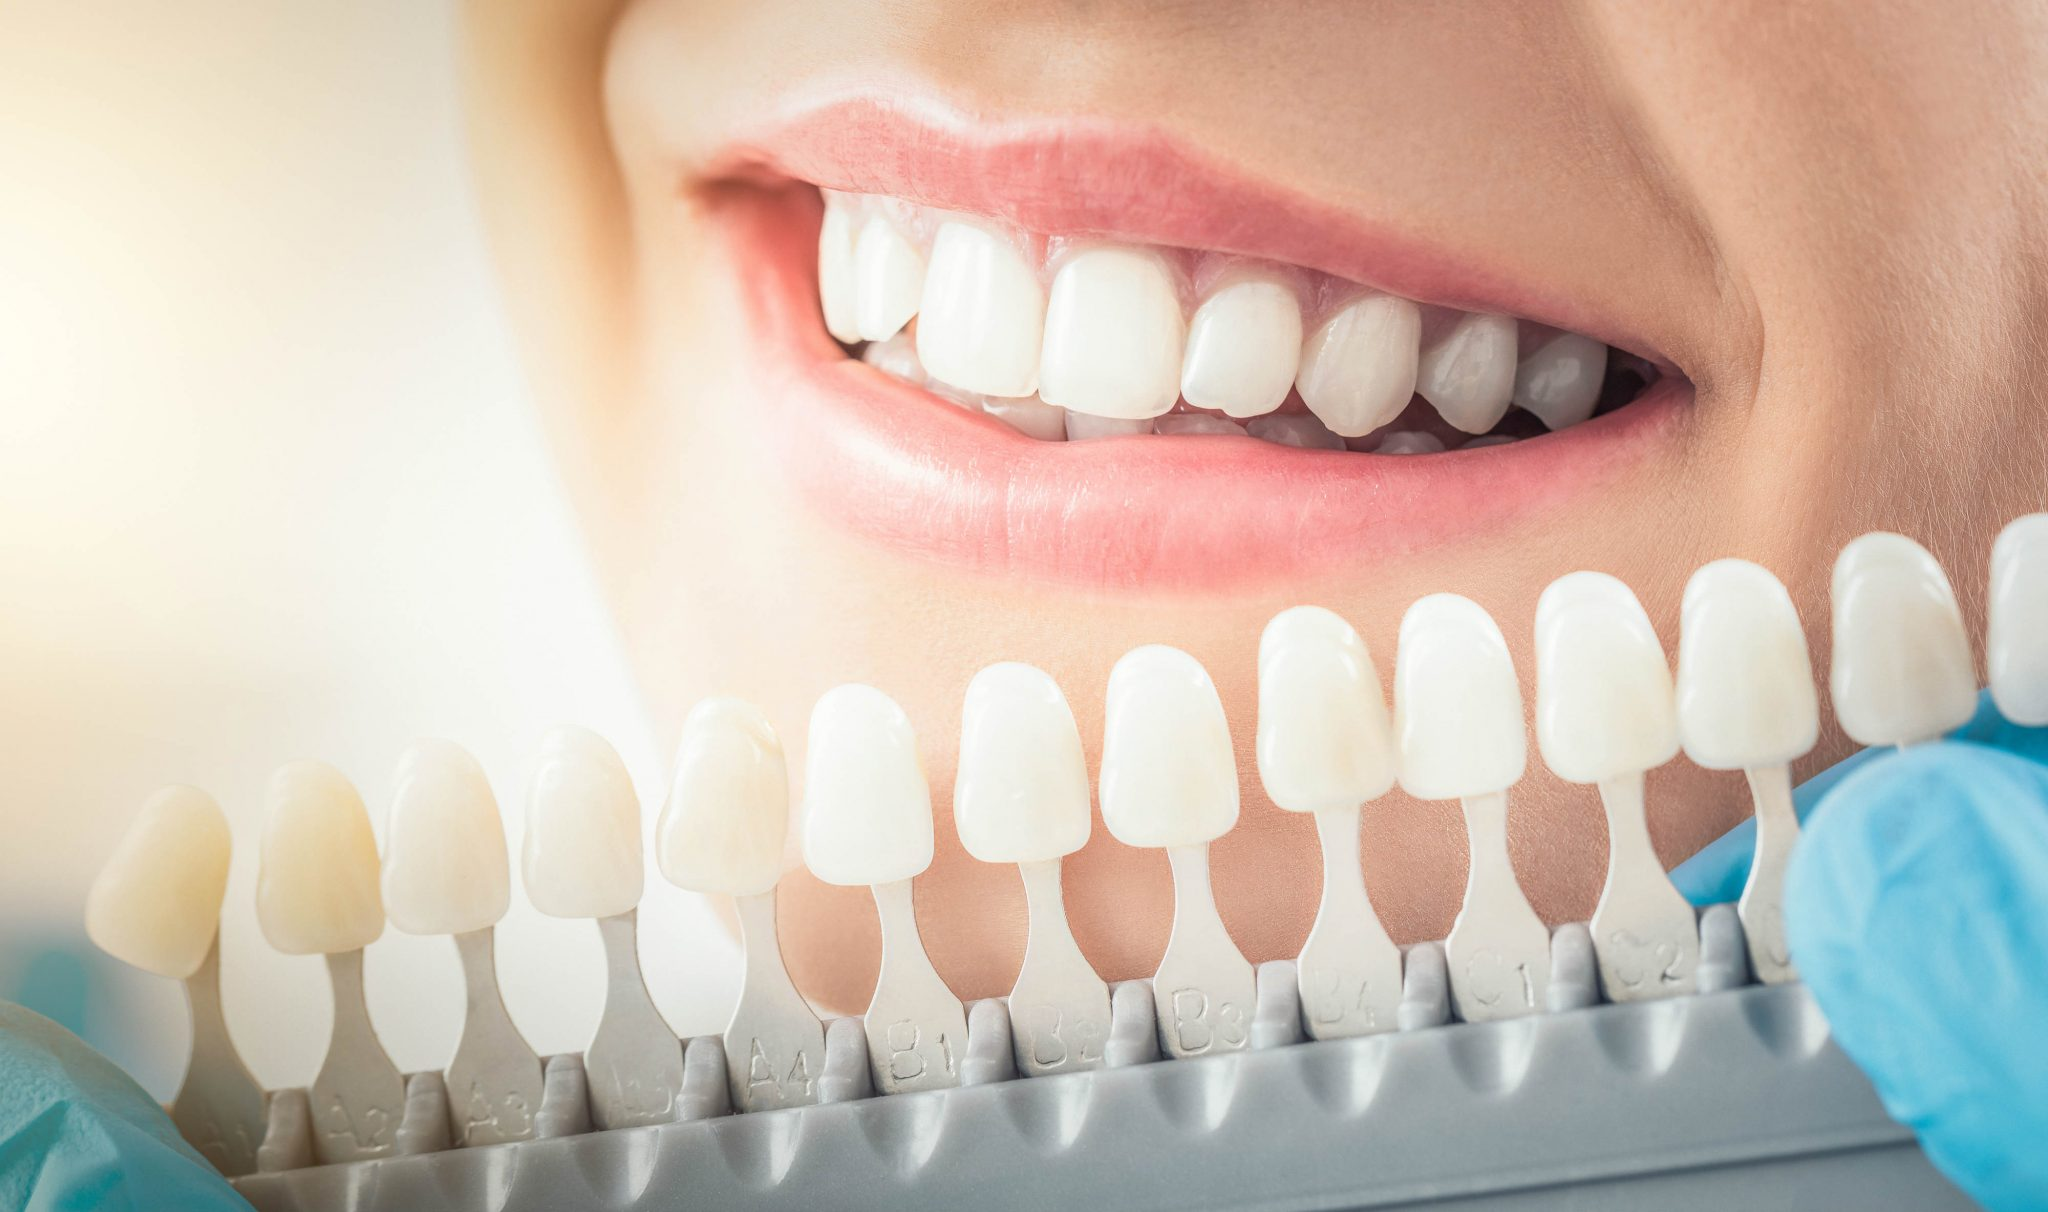 cosmetic-dentistry-near-me-san-mateo-ca-teeth-whitening